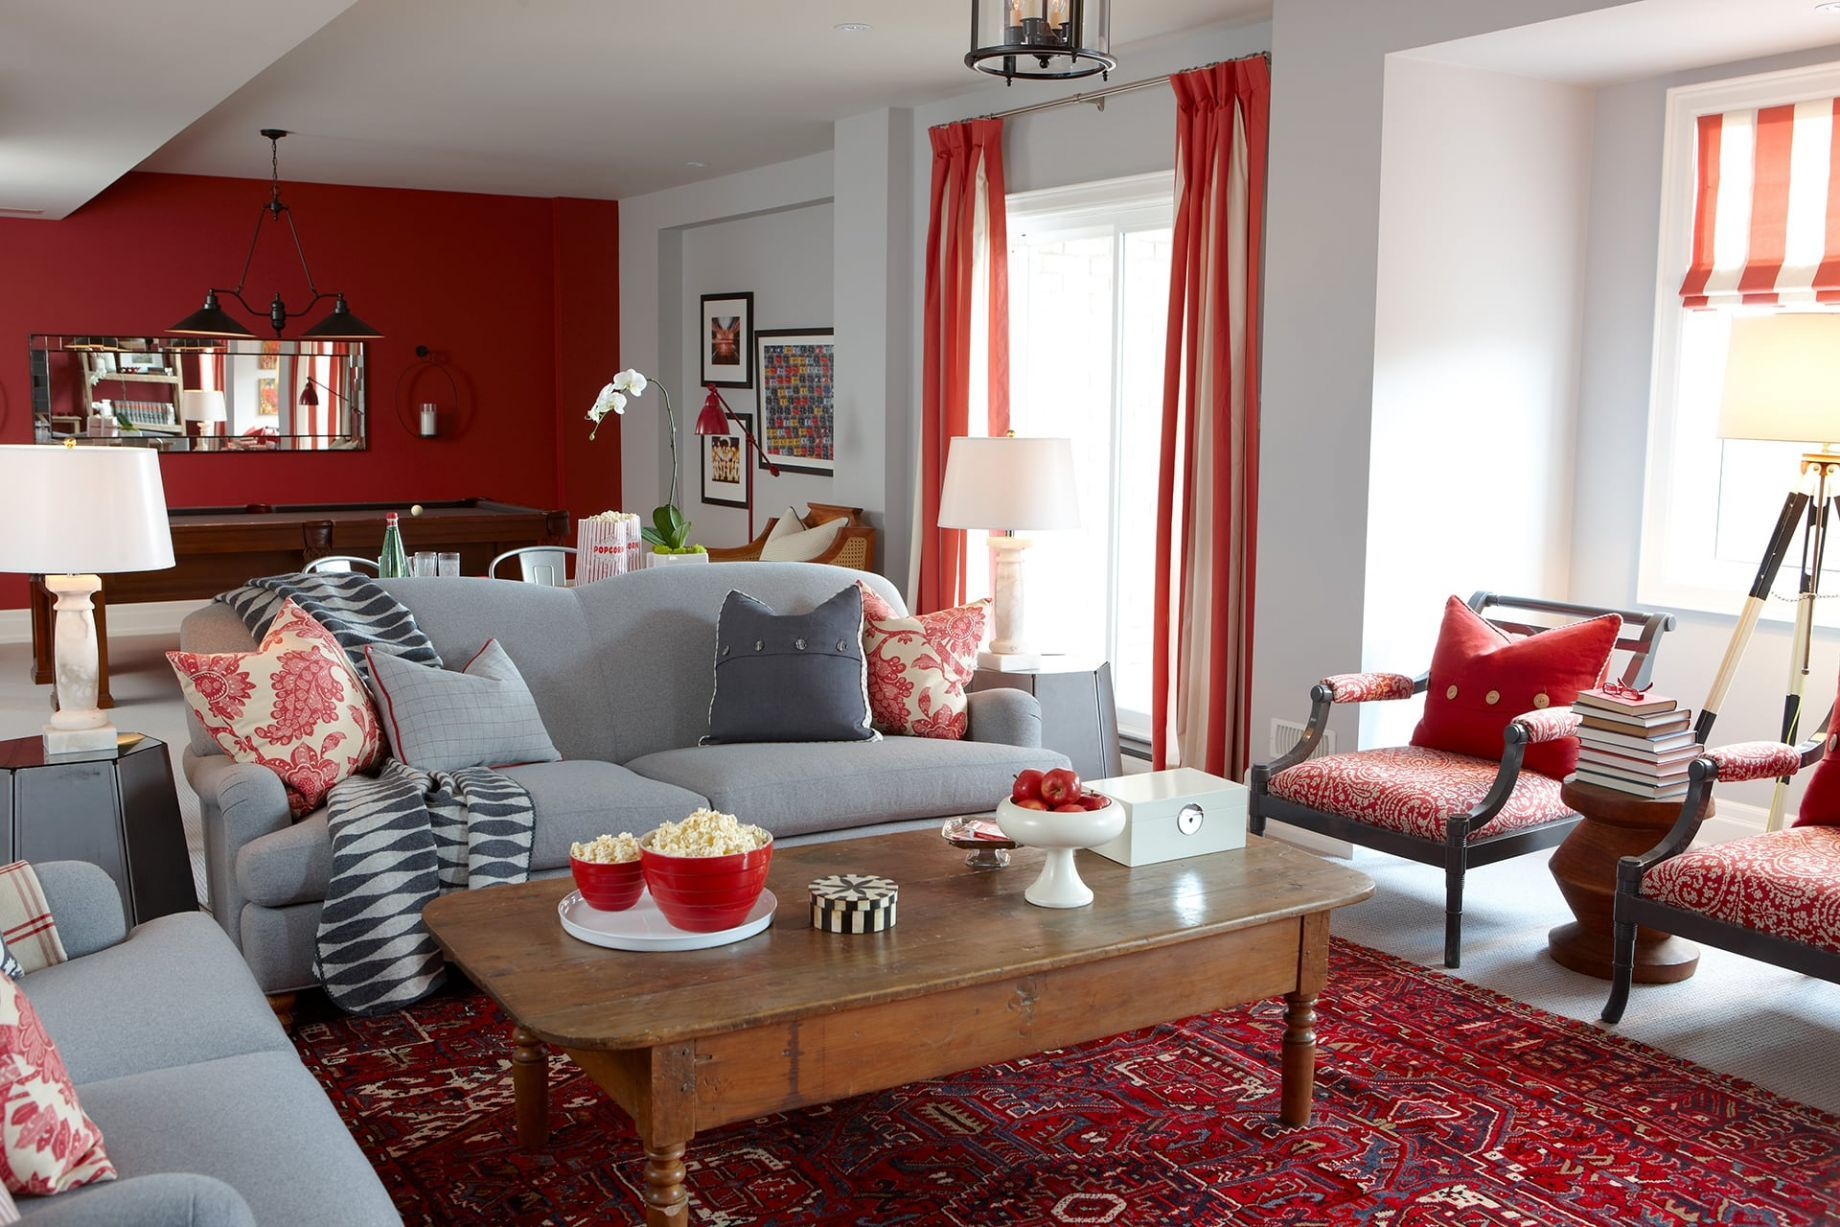 Front View Of Rec Room Showing Grey Sofa With Cozy Pillows And Big Red Rug Maroon Living Room Living Room Red Living Room Grey